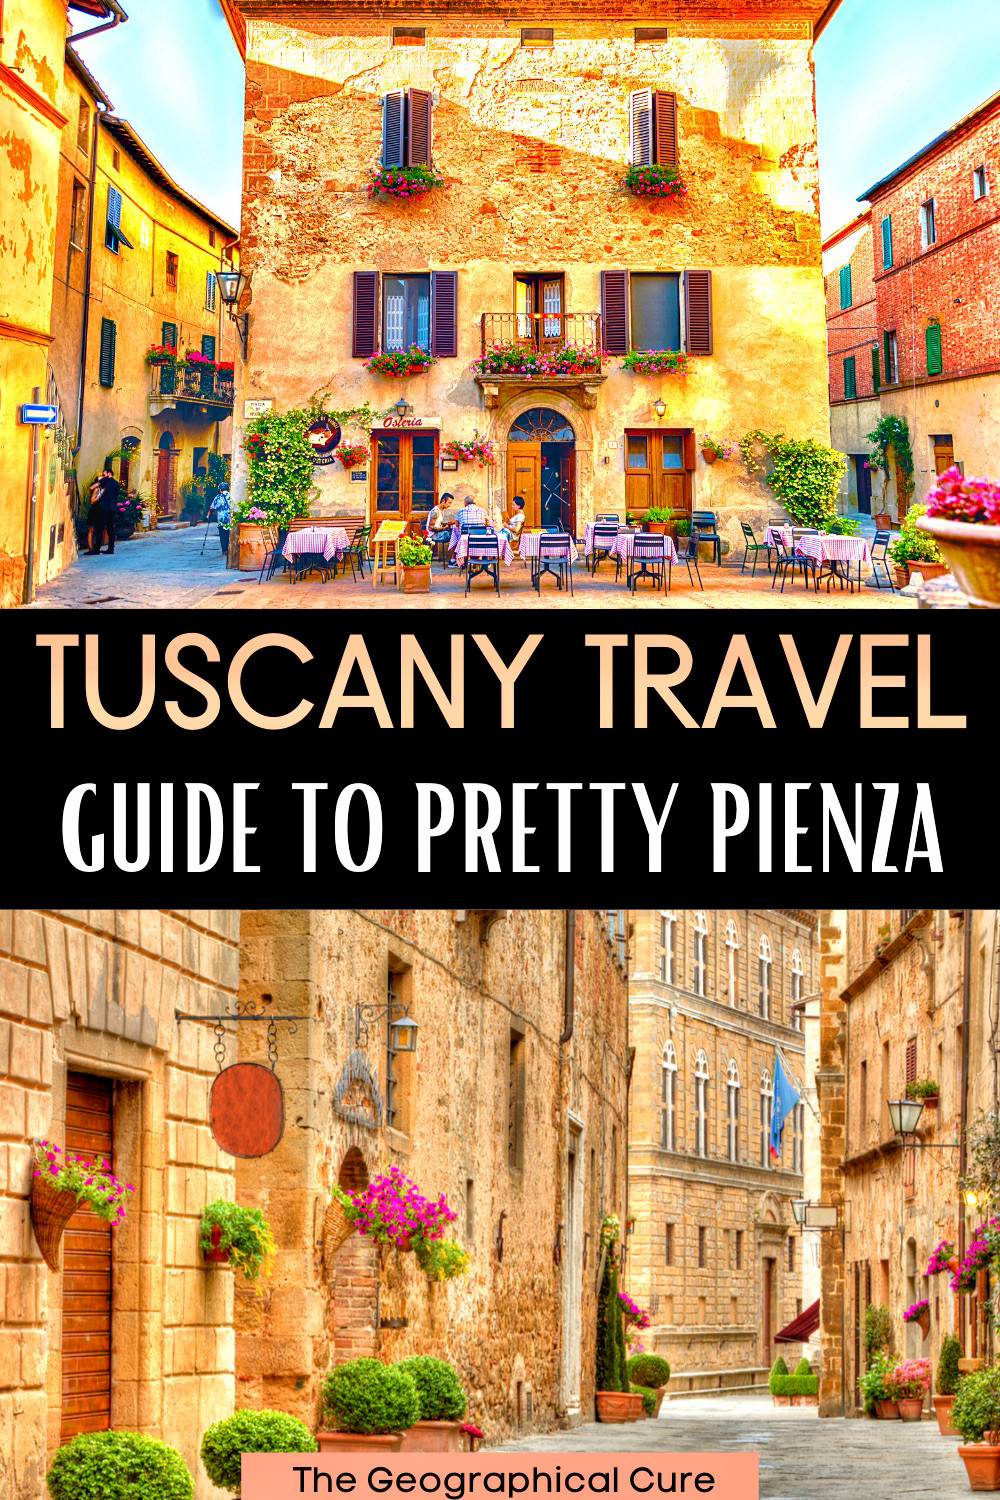 guide to visiting Pienza, one of Italy's most beautiful towns